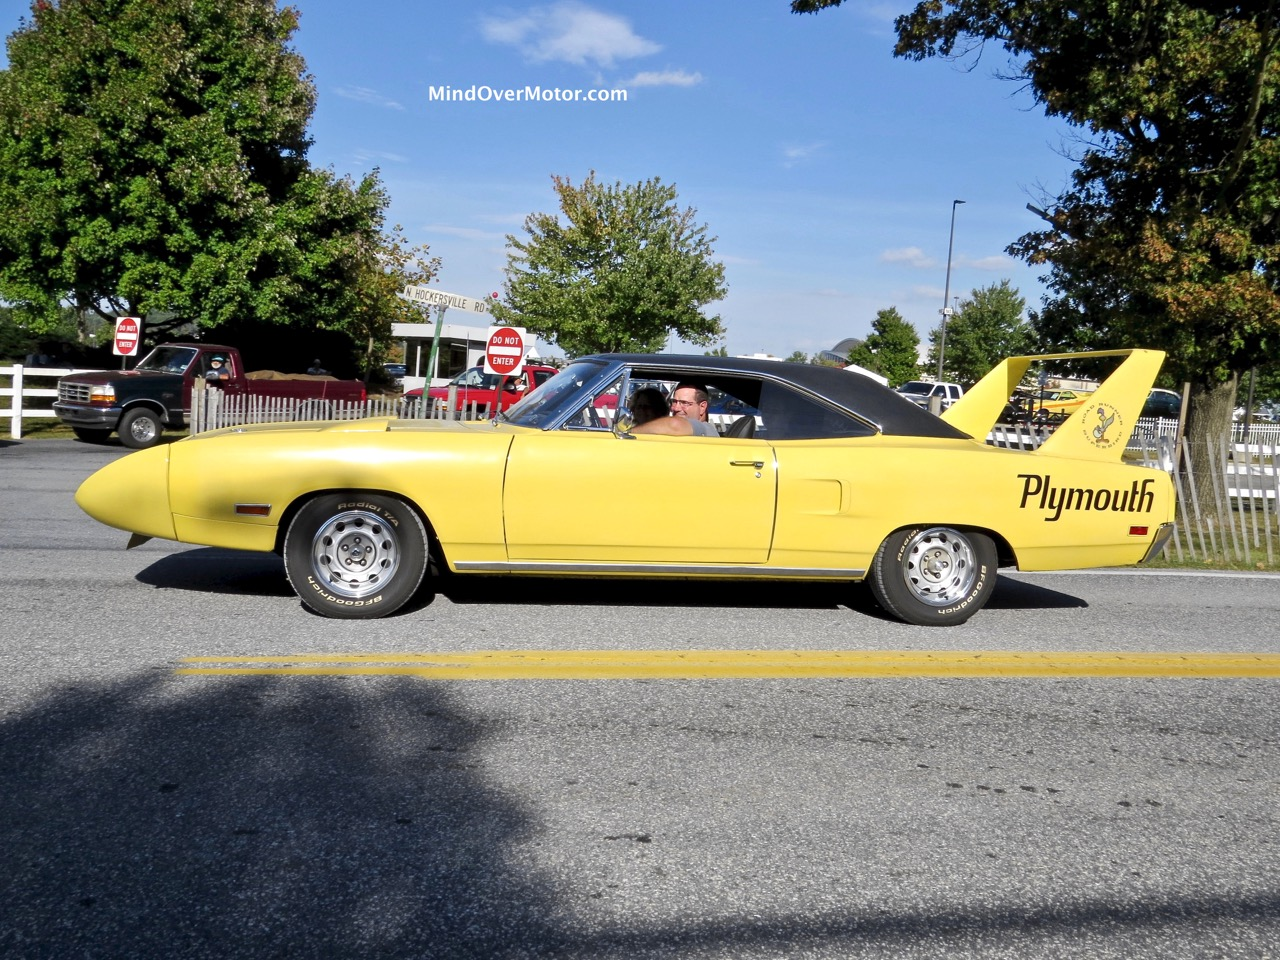 1970 Plymouth Superbird YELLOW